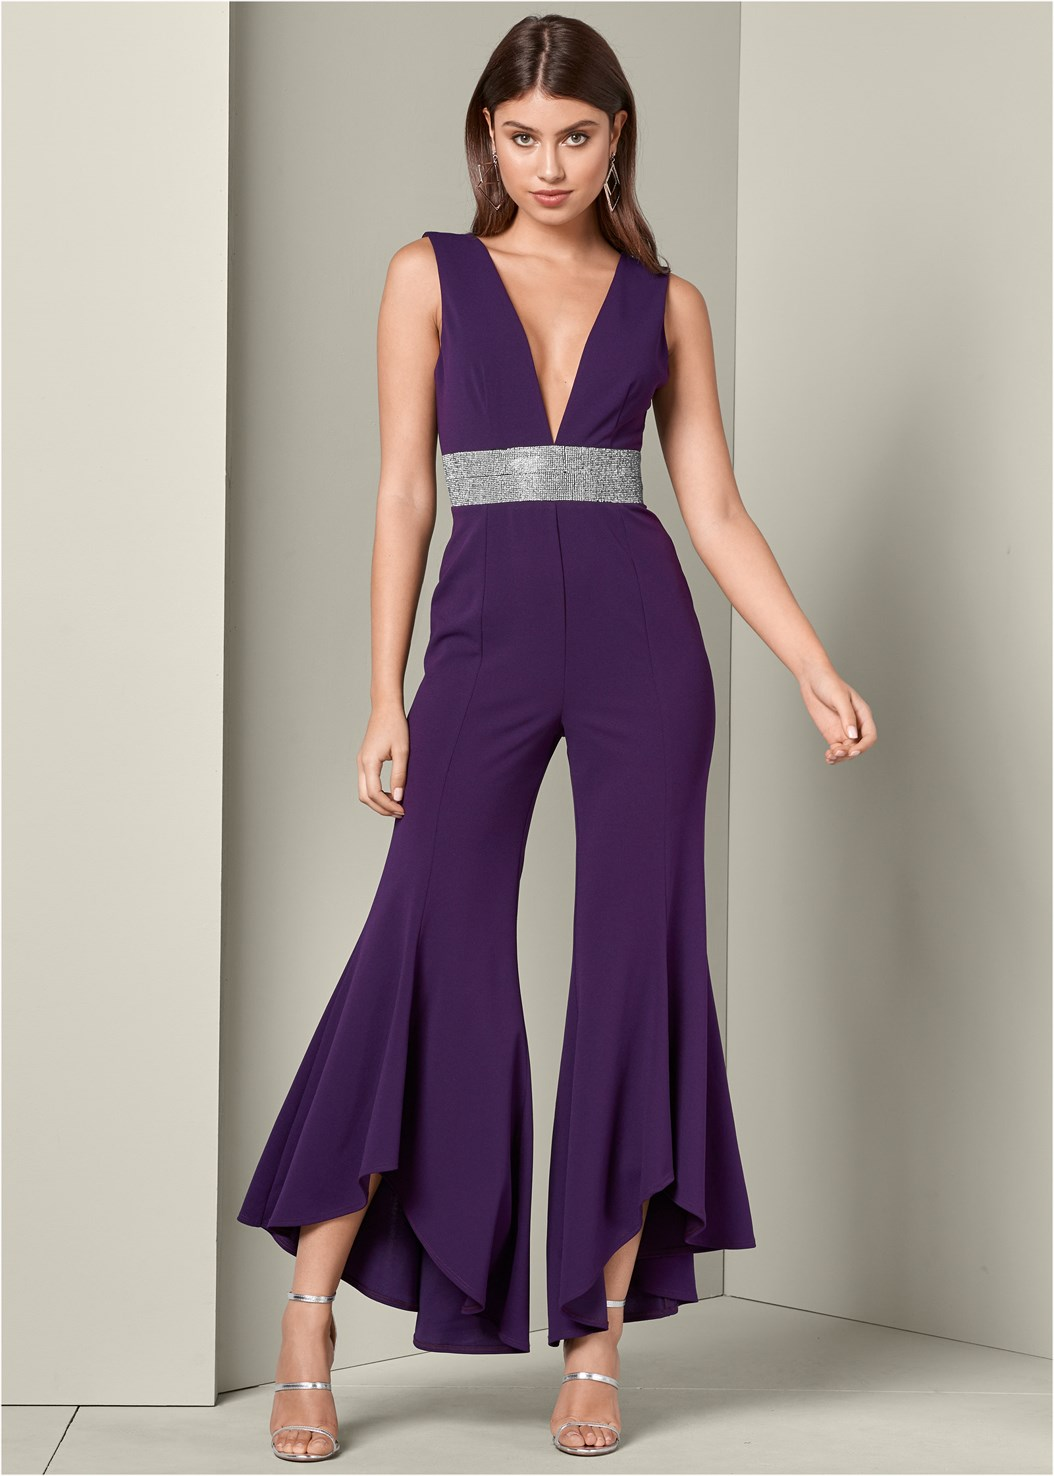 Deep V Jumpsuit,High Heel Strappy Sandals